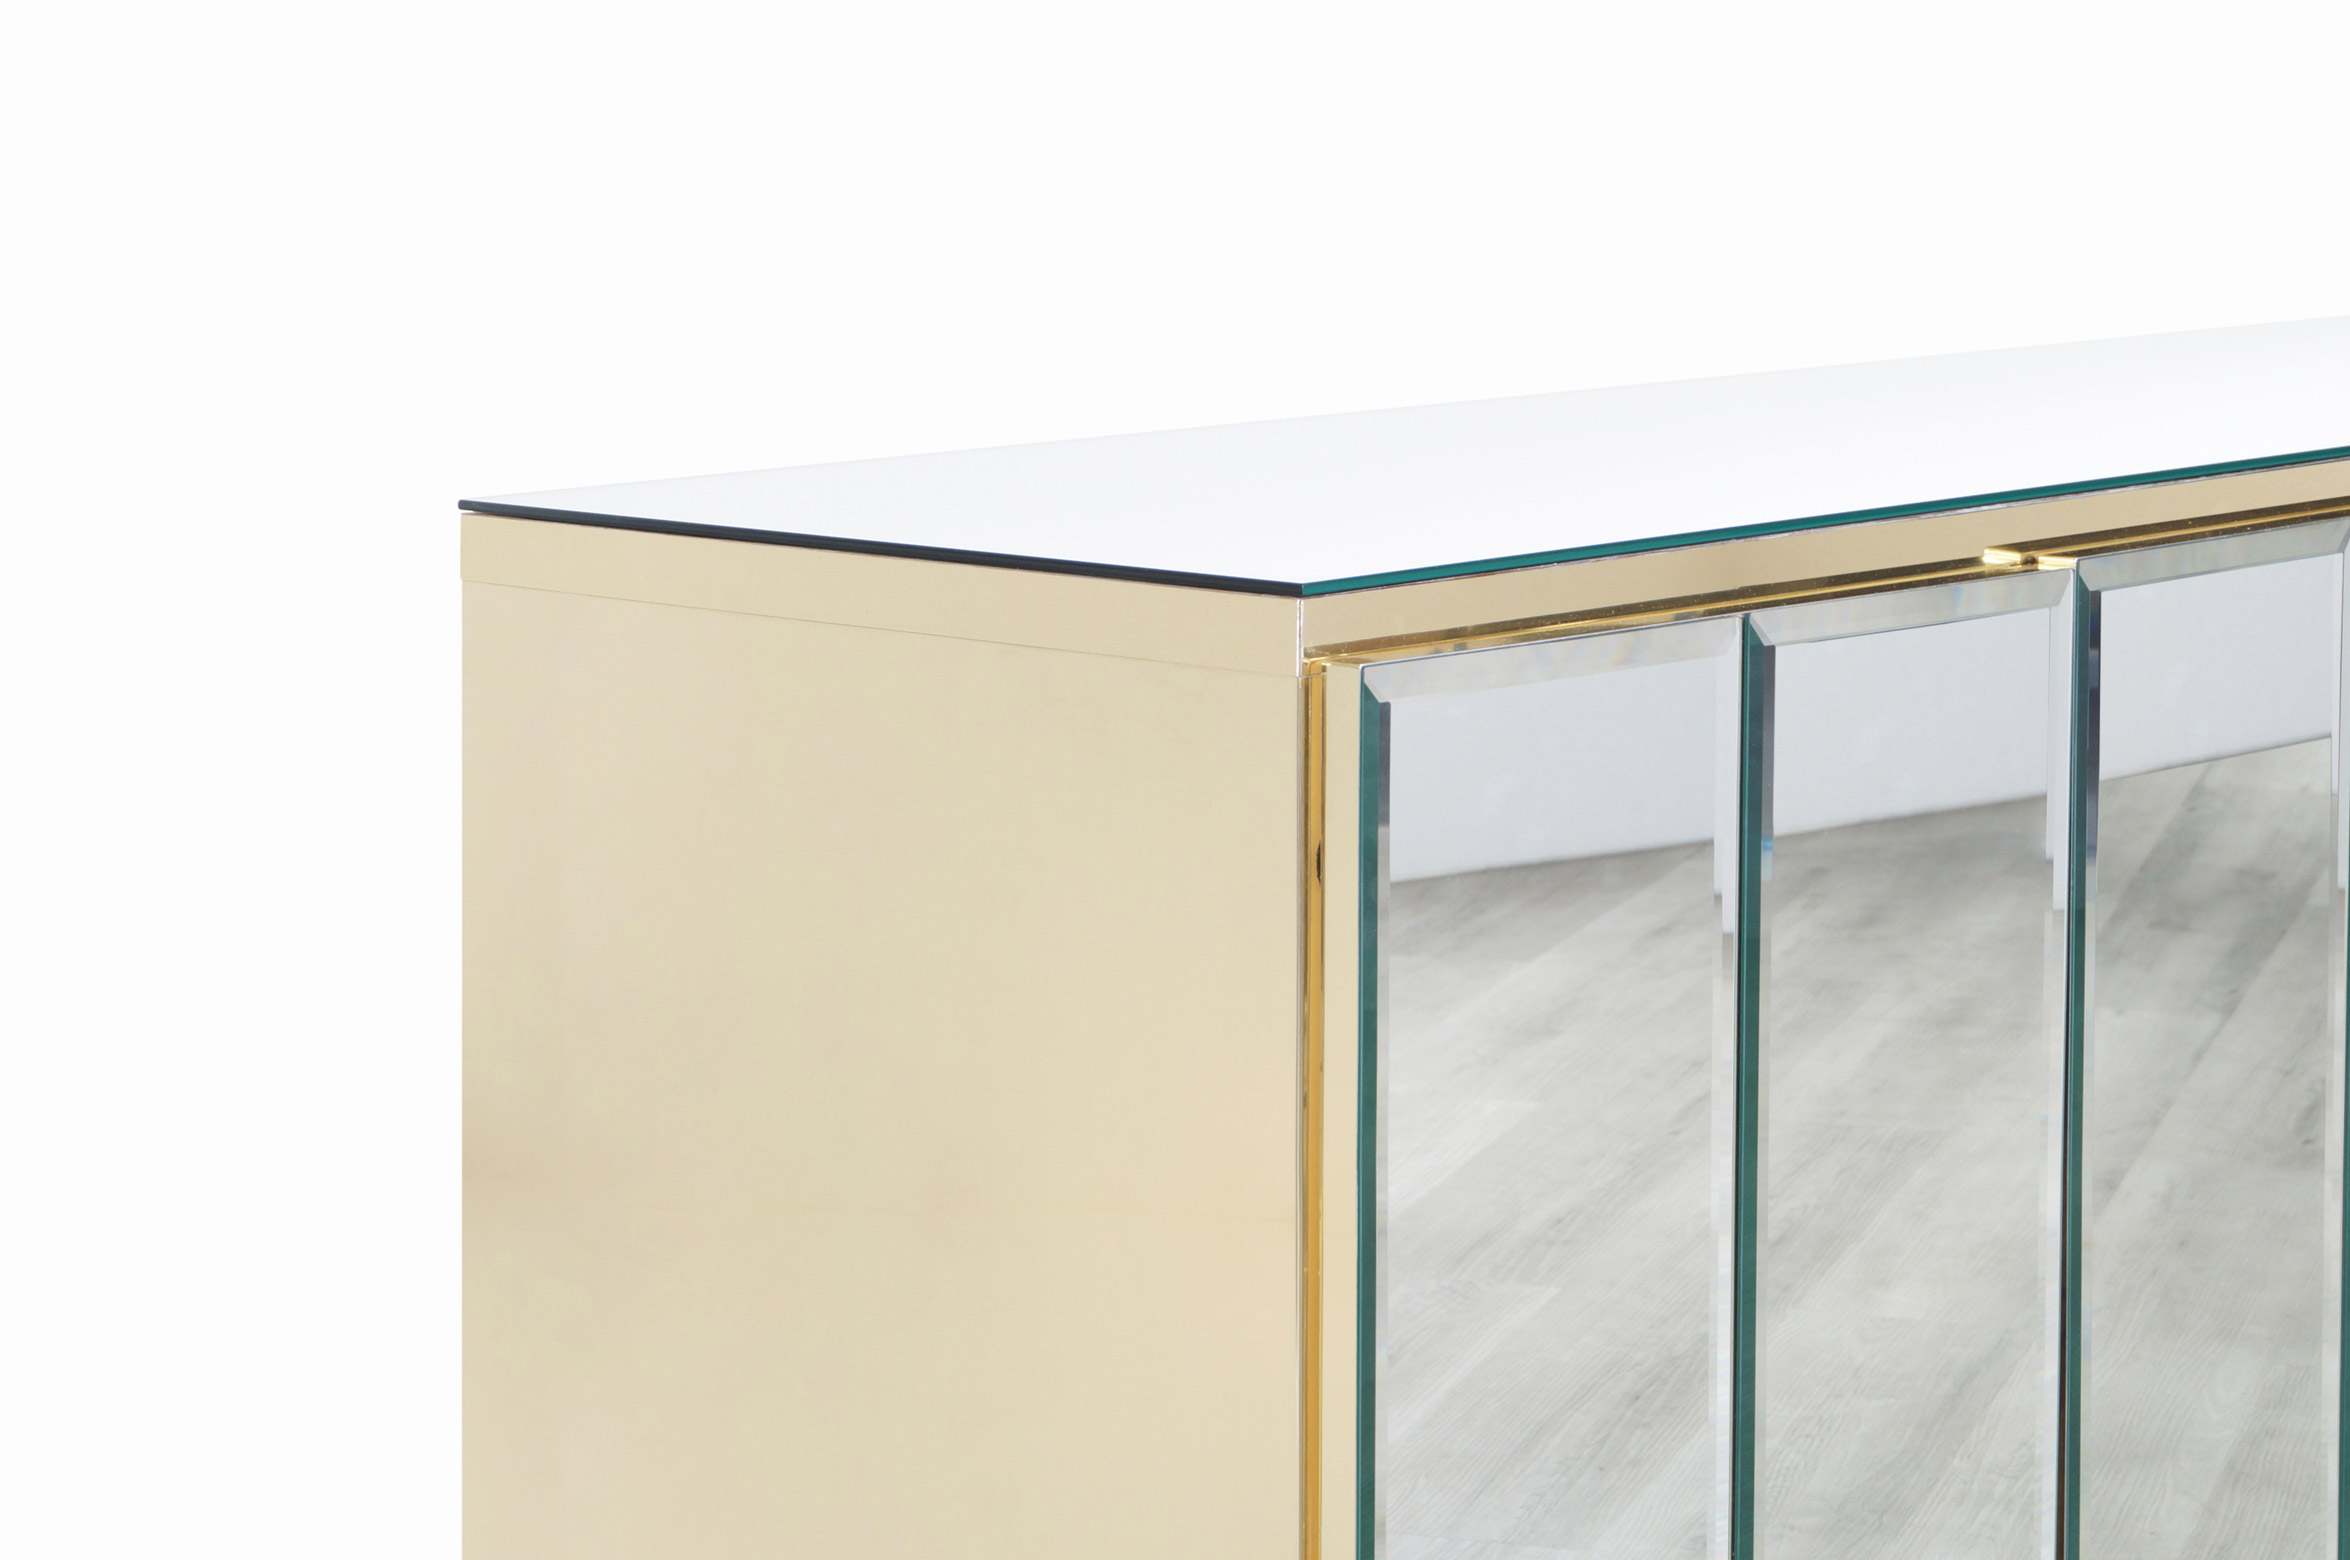 Vintage Mirrored and Glass Credenza by Ello